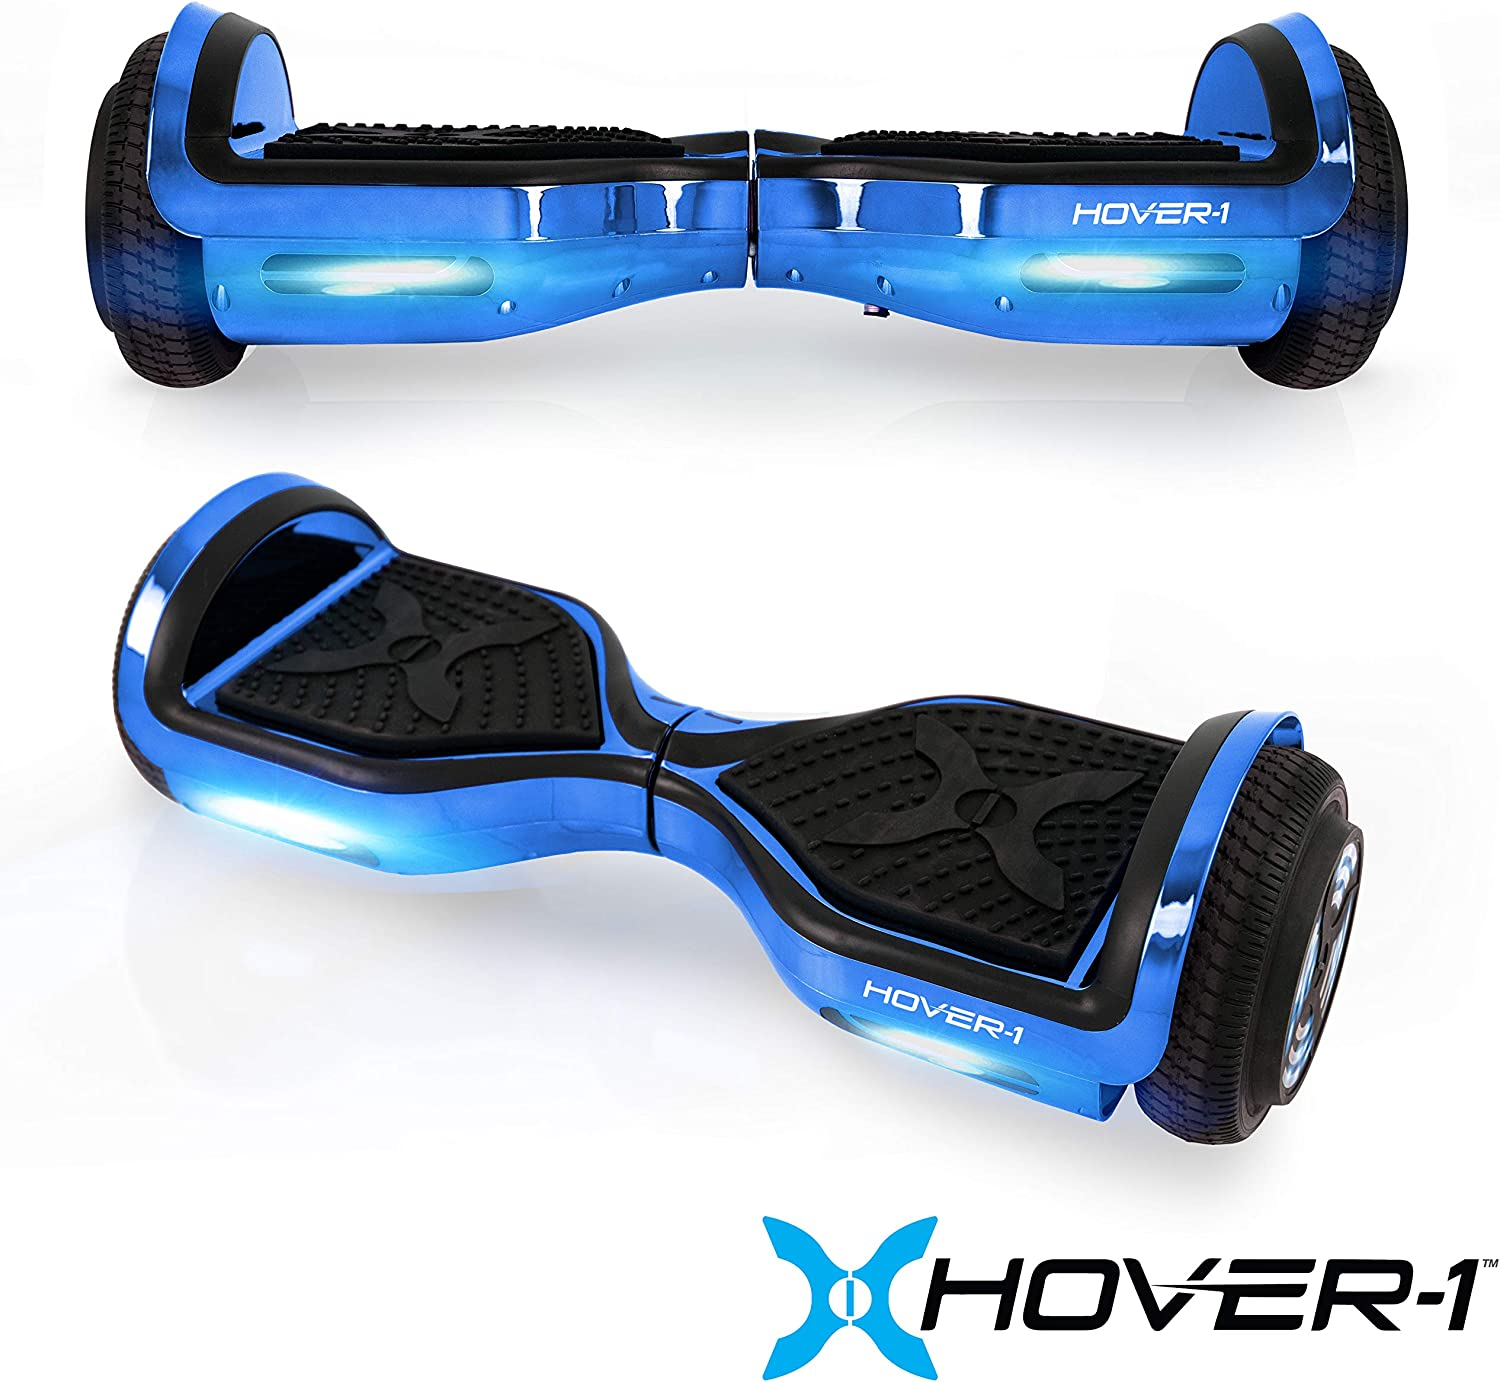 Hover-1 Chrome Electric Hoverboard Scooter Blue - 3